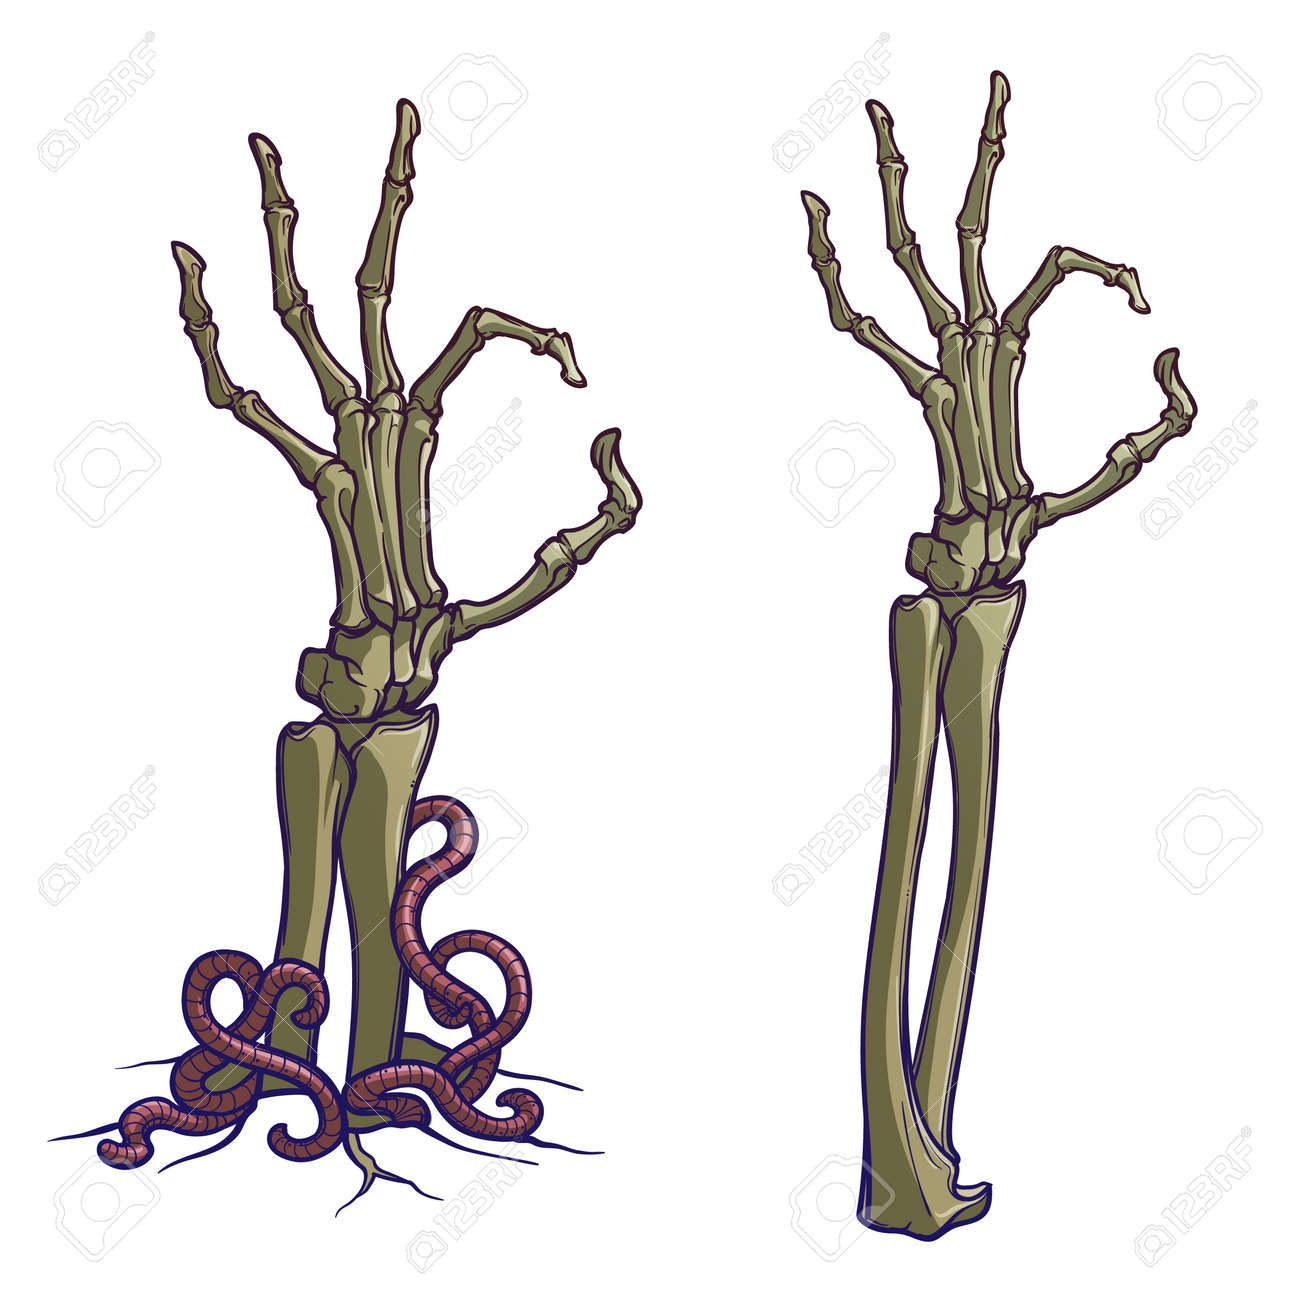 Zombie body language. OK Sign. Pair of skeleton hands rising from the ground and torn apart. linear drawing painted and isolated on white background. EPS10 vector - 109543246